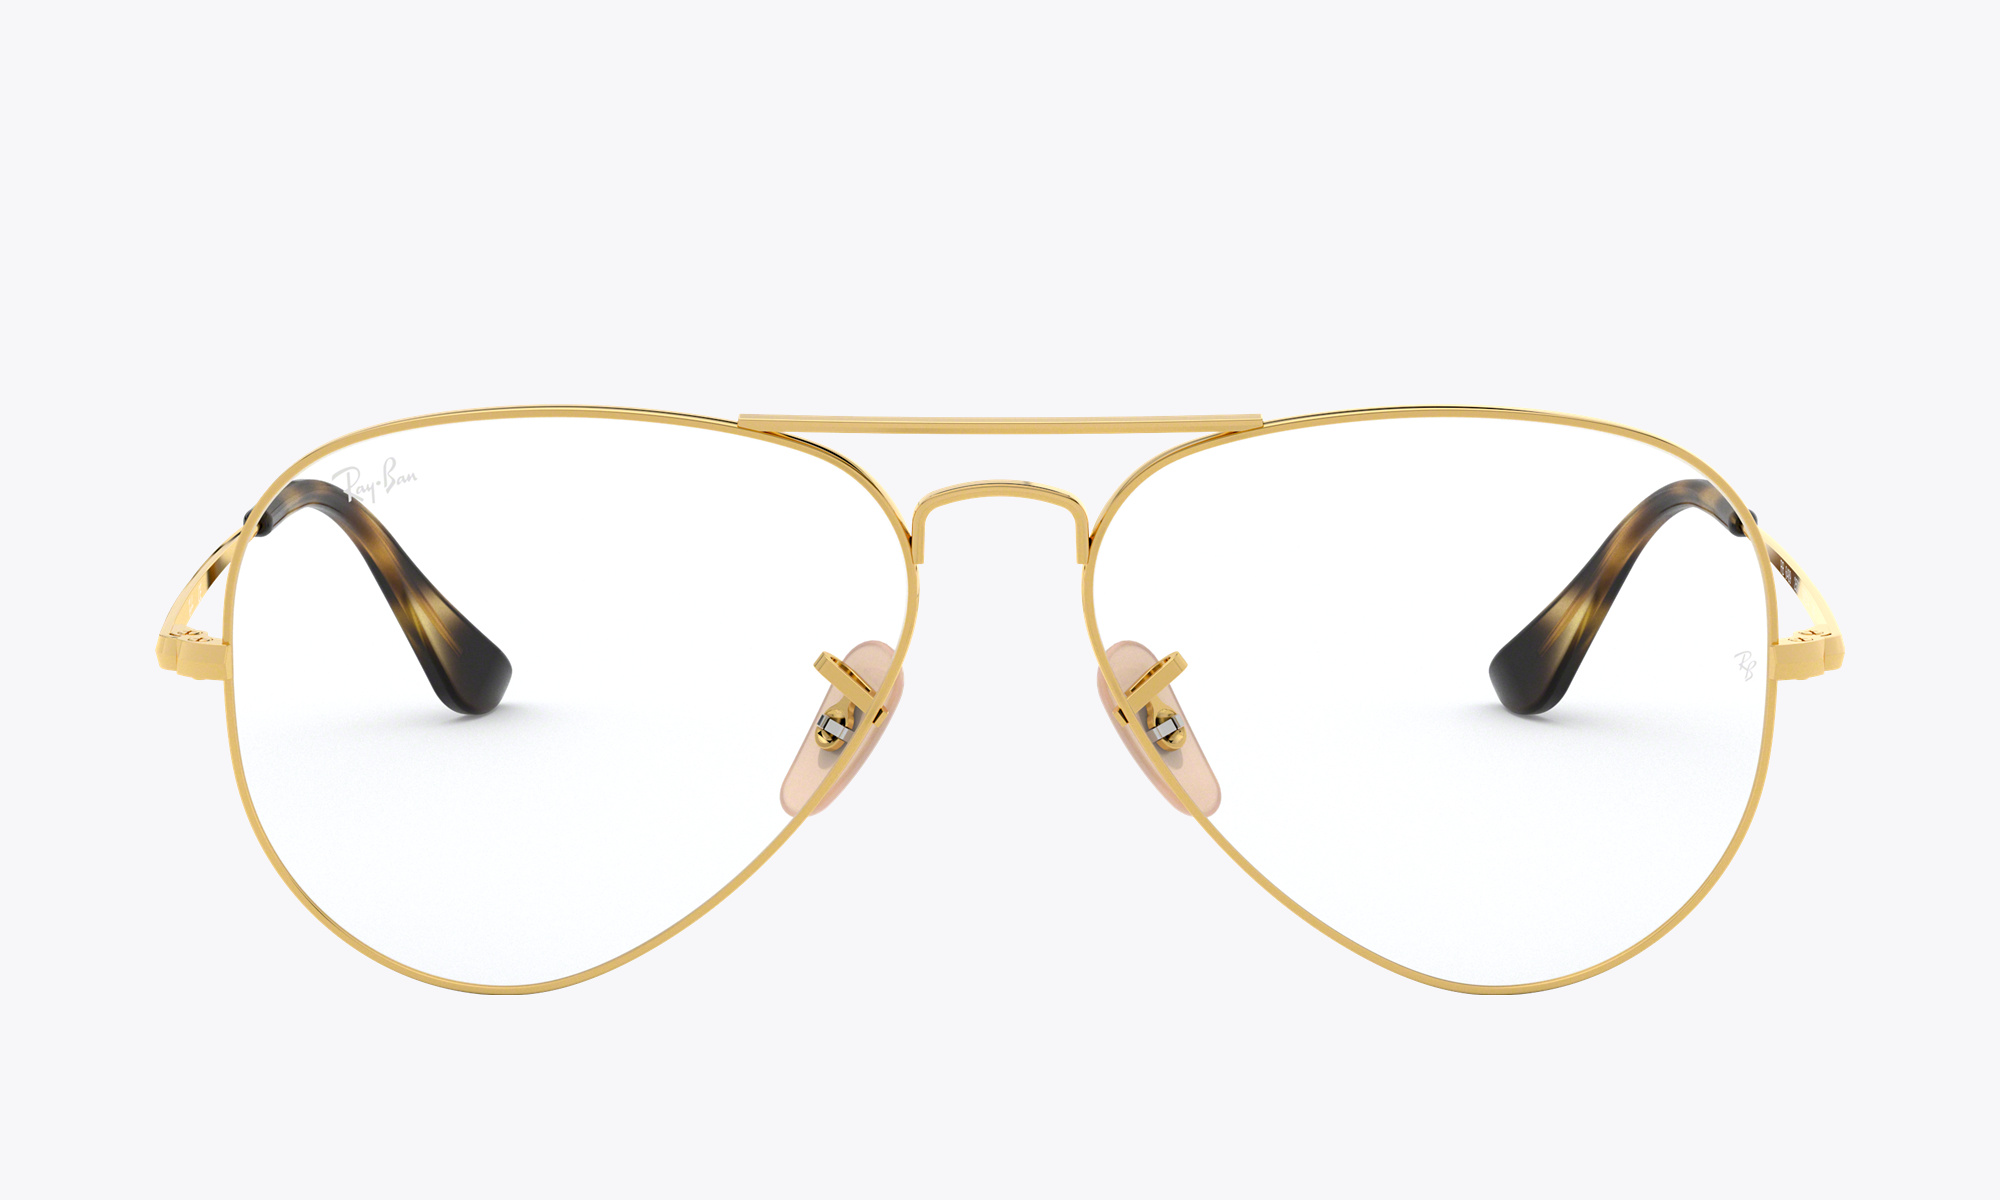 Image of Ray-Ban Aviator Optics color Gold